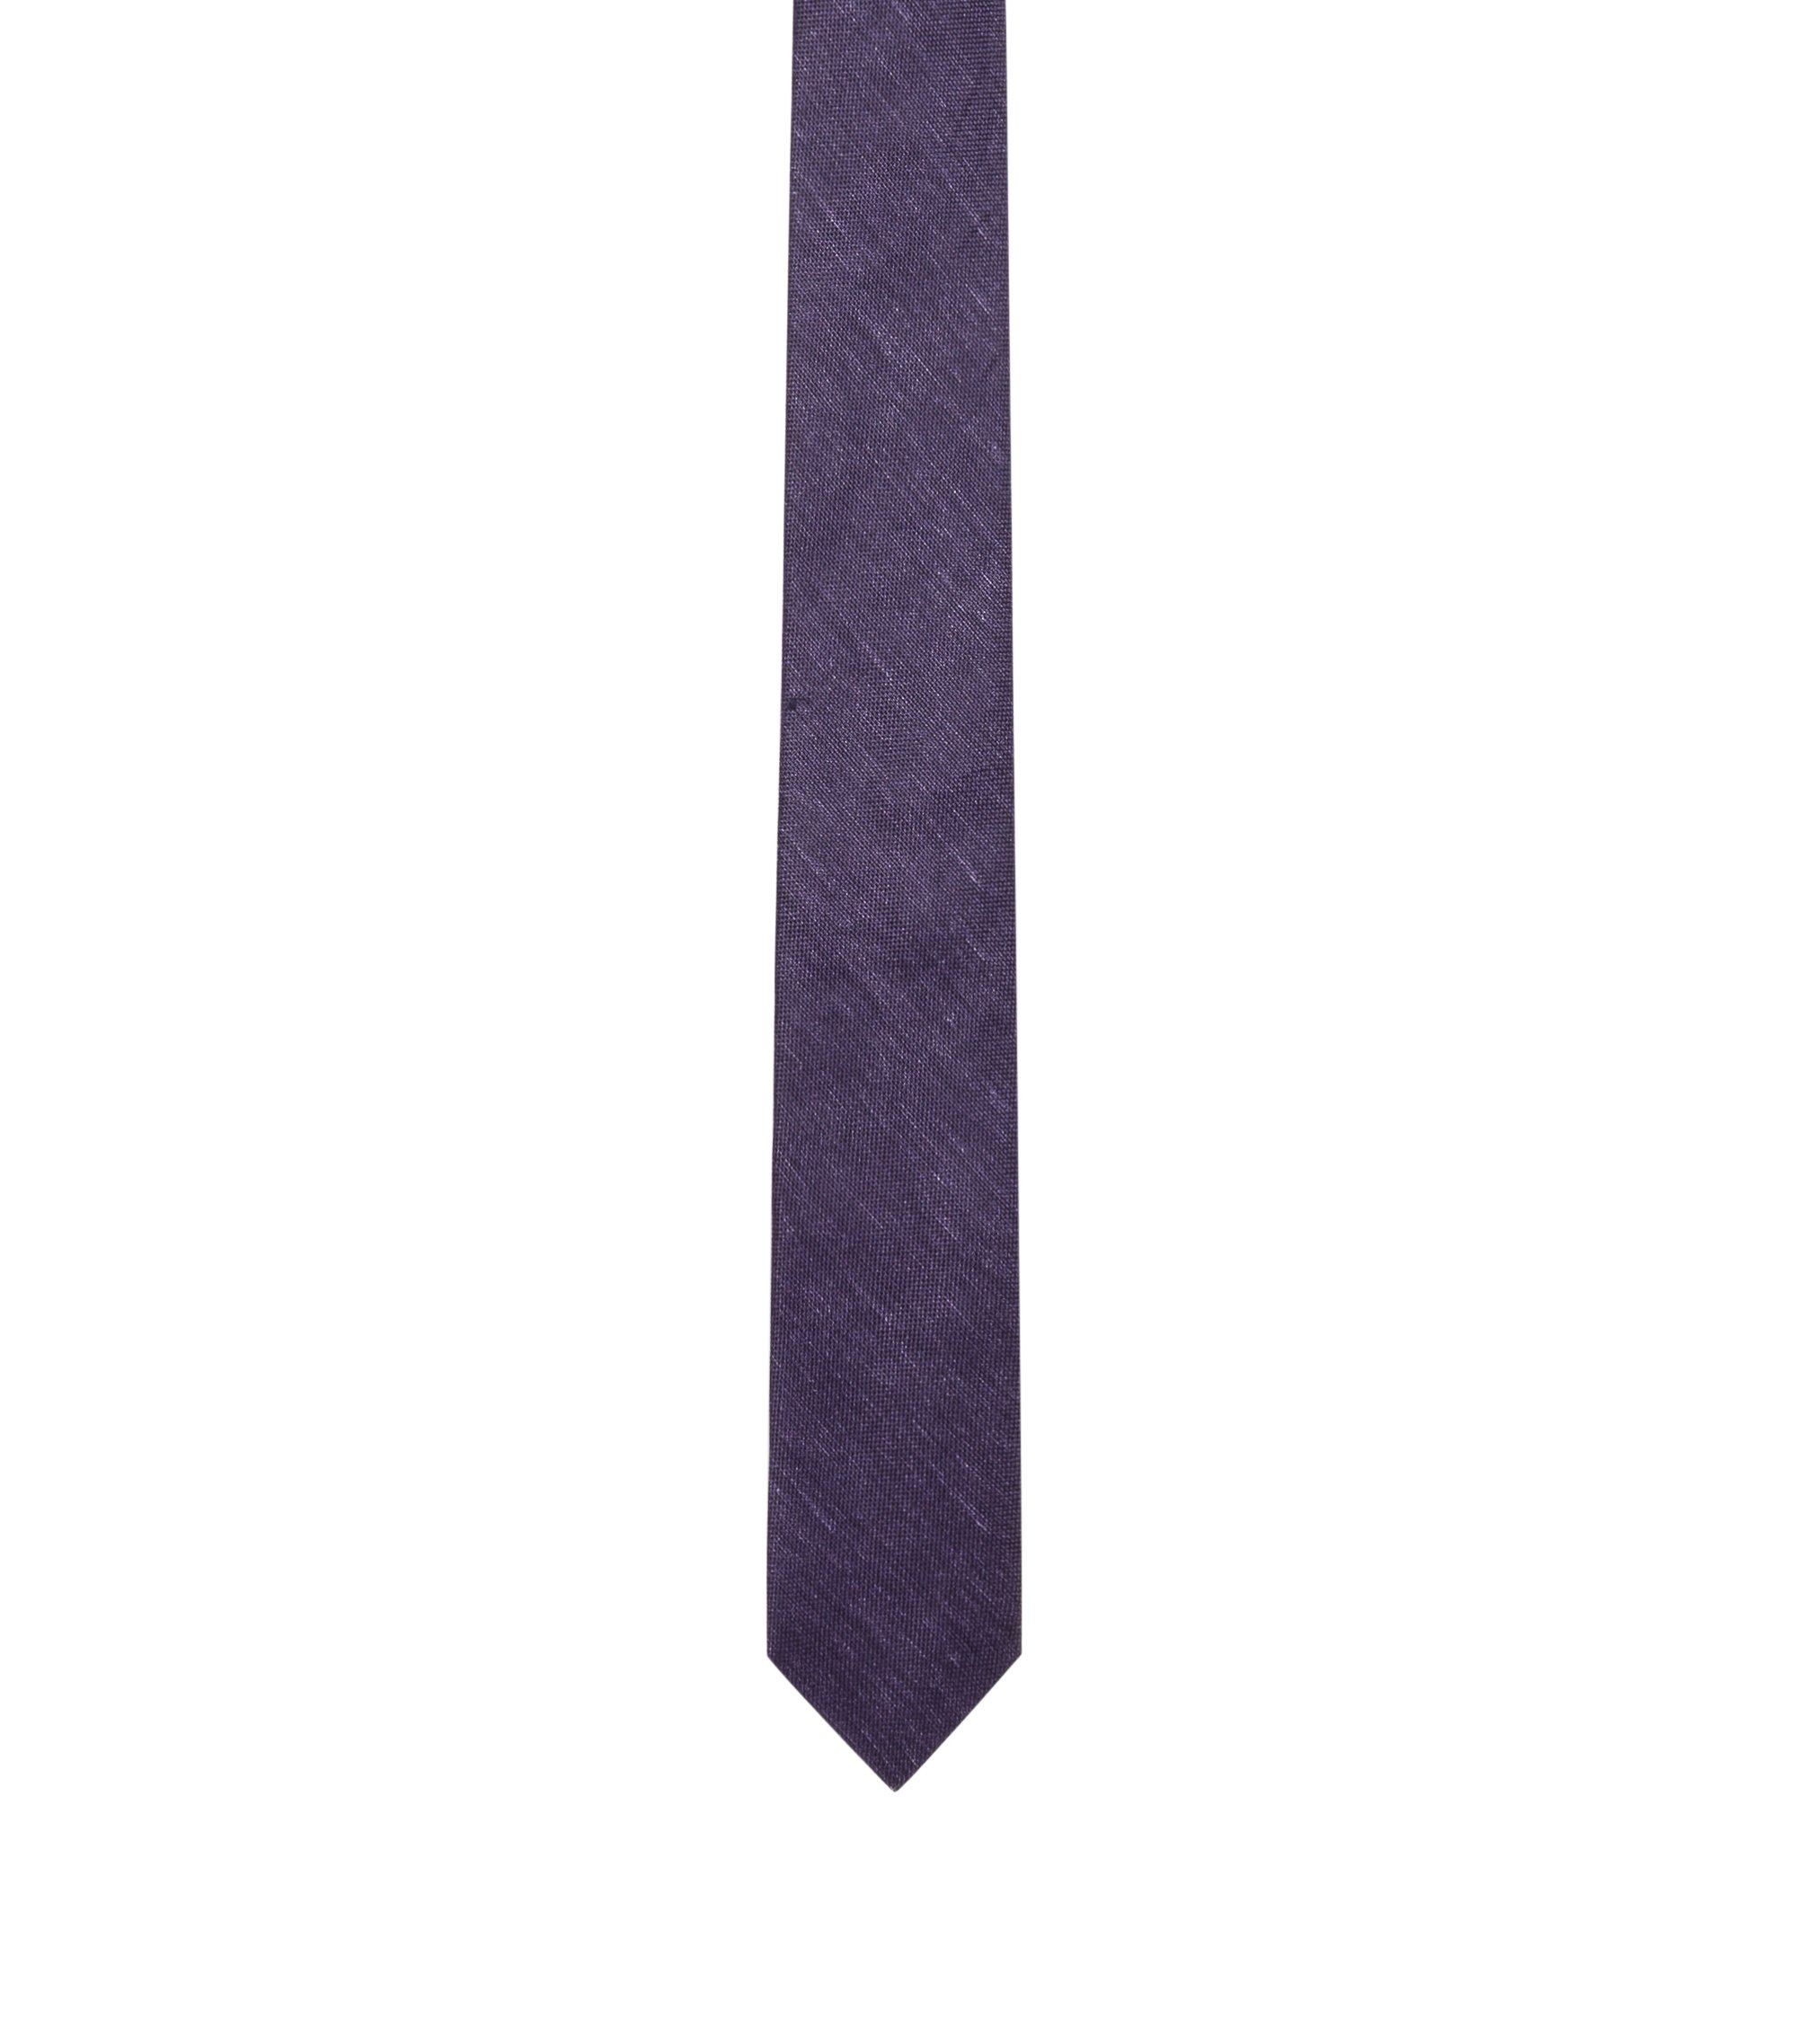 Yarn-Dyed Cotton Slim Tie, Dark Blue